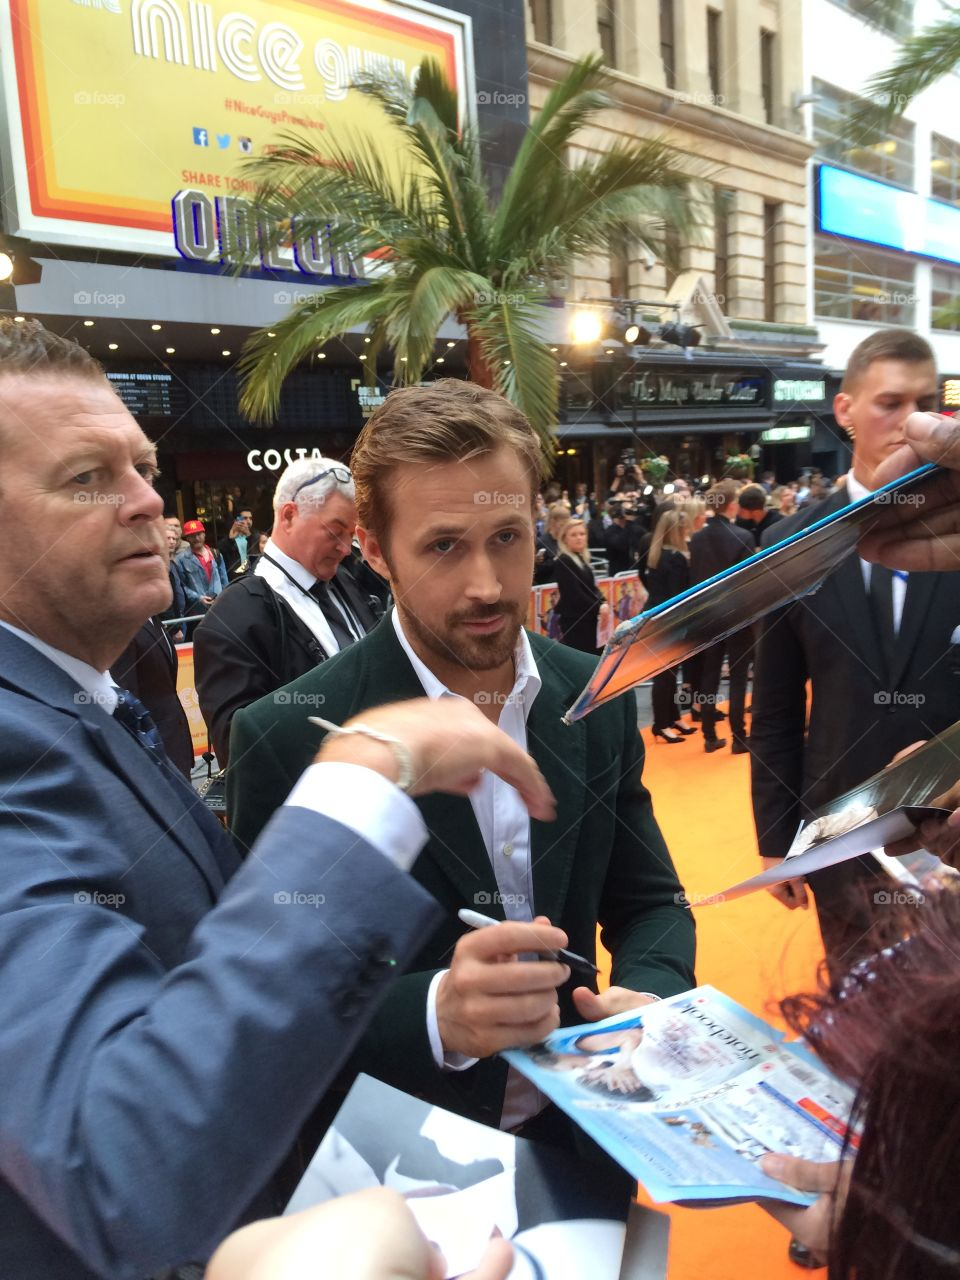 Ryan Gosling at the UK Movie Premiere of Nice Guys, meeting the fans